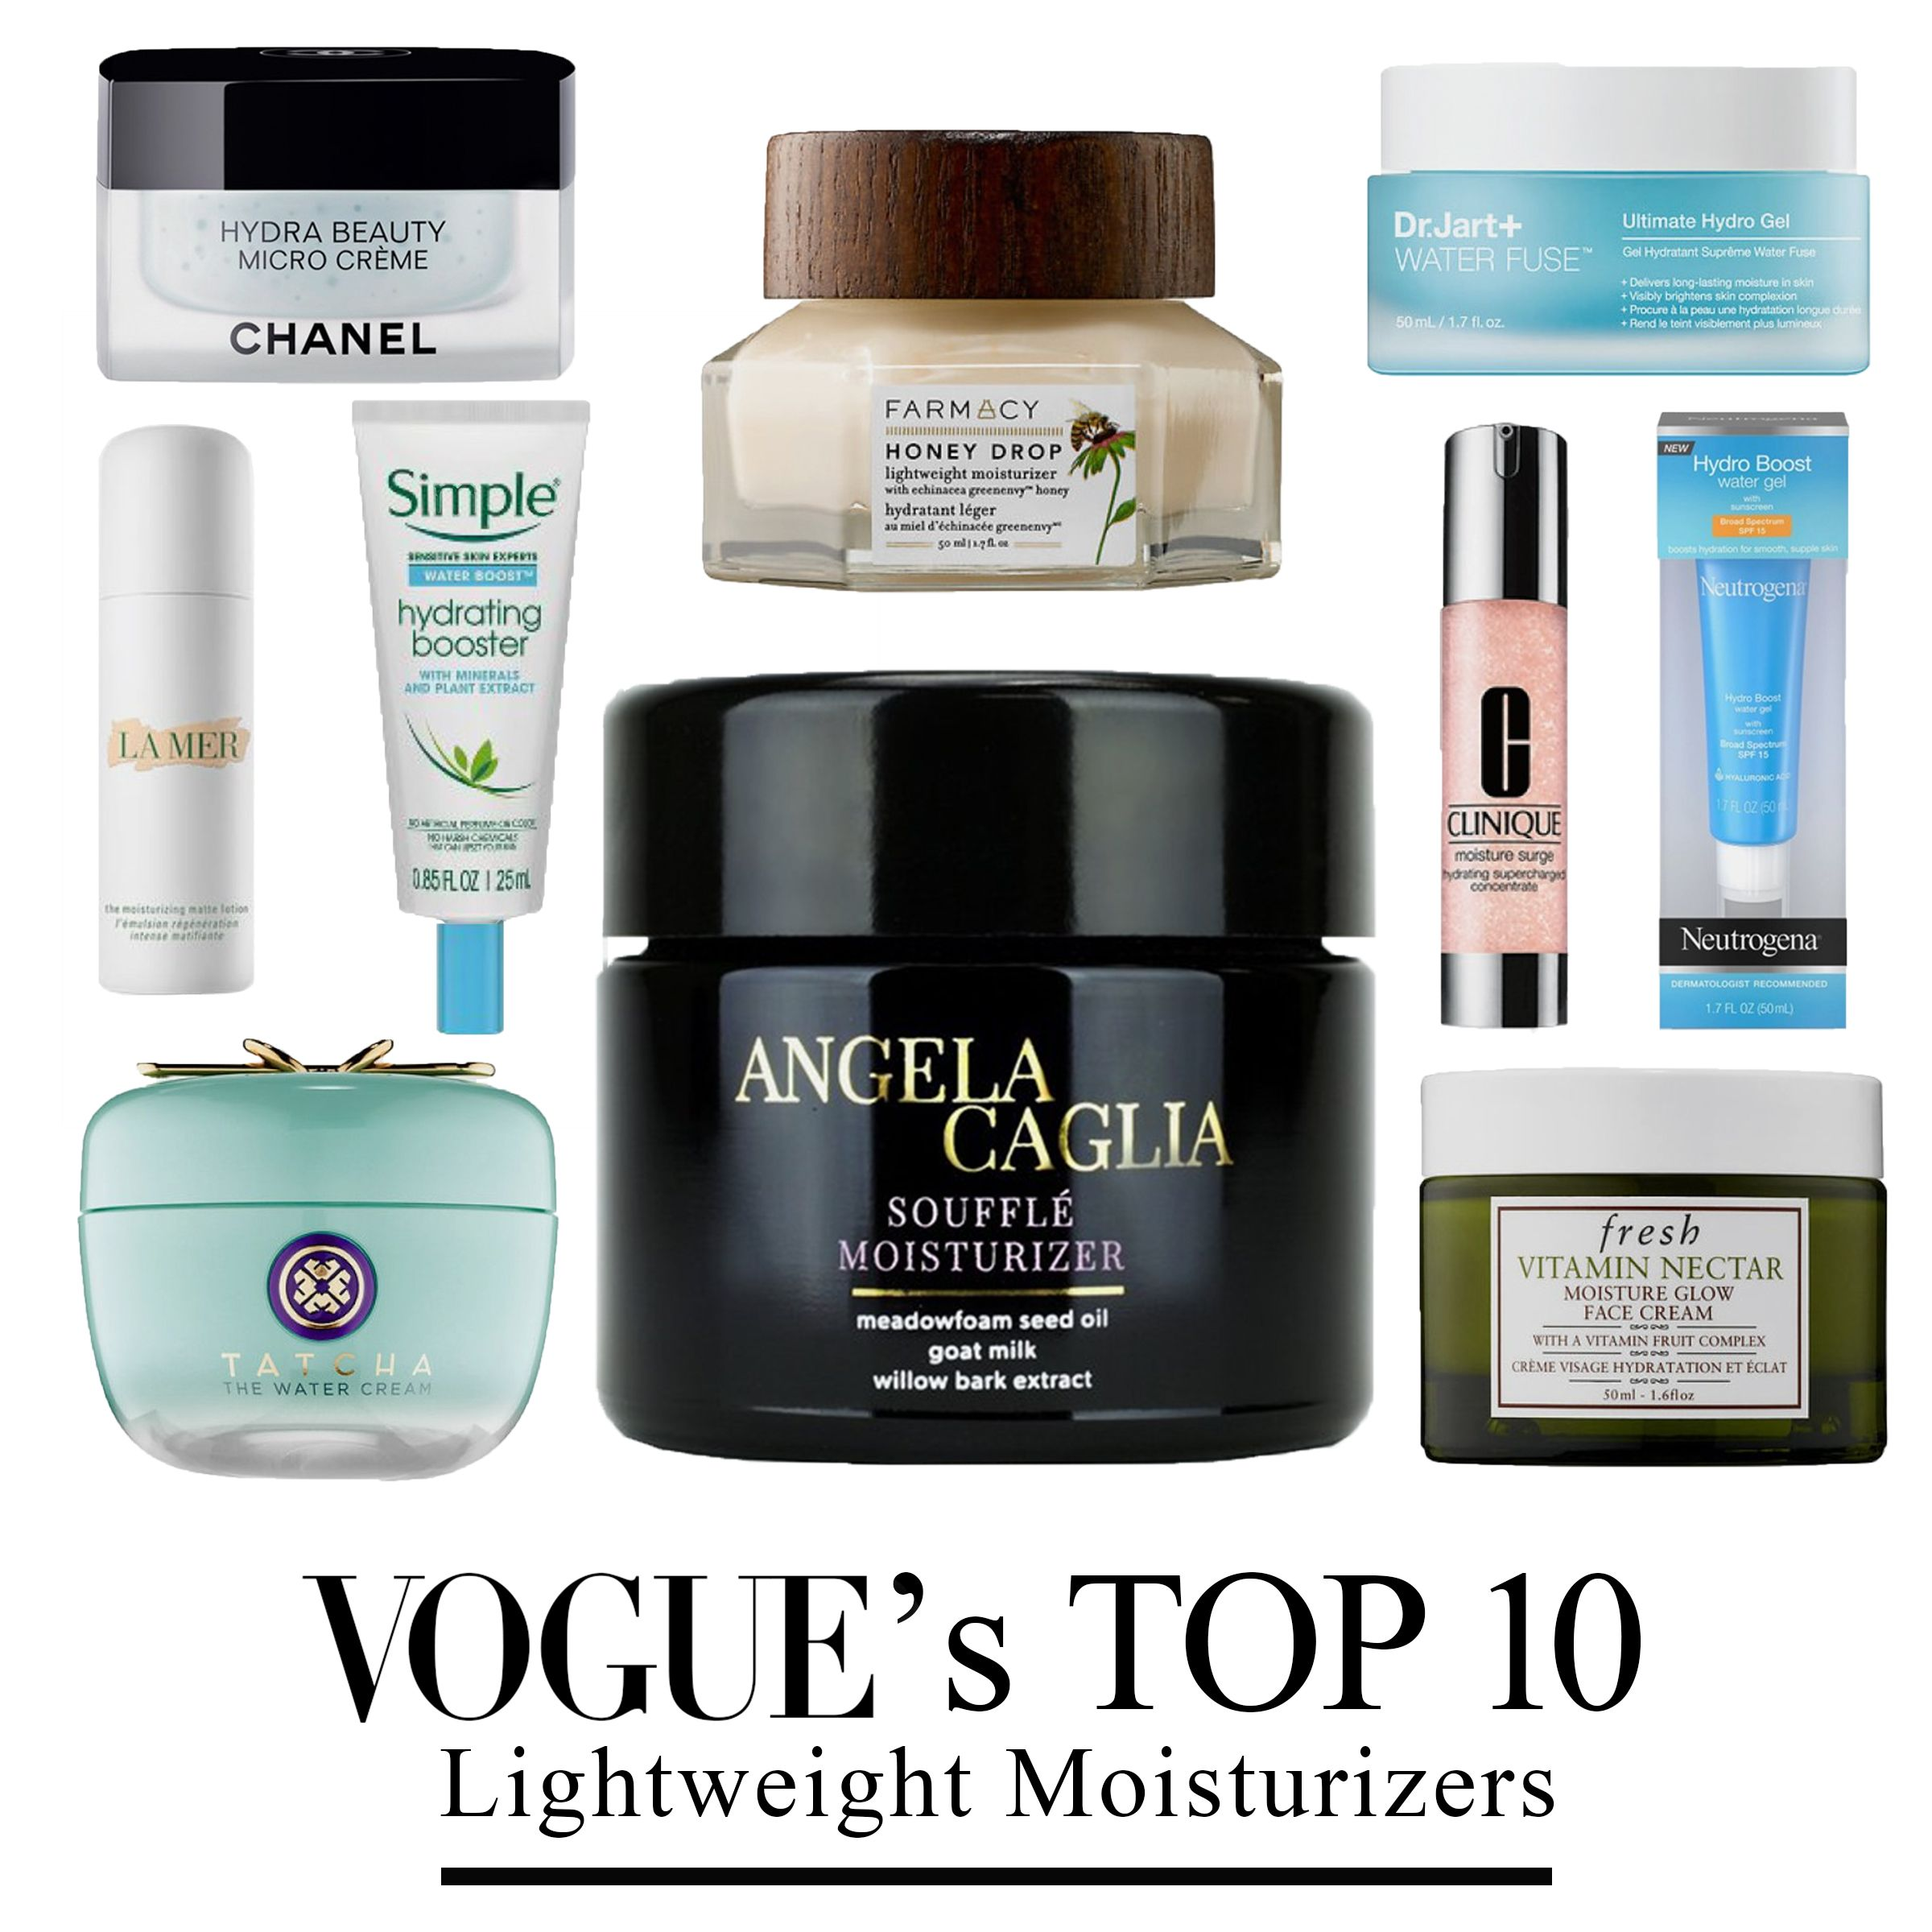 It S An Honor To Have Our Souffle Moisturizer Included Among Such Esteemed Company Healthy Skin Care Routine Makeup Help Skin Care